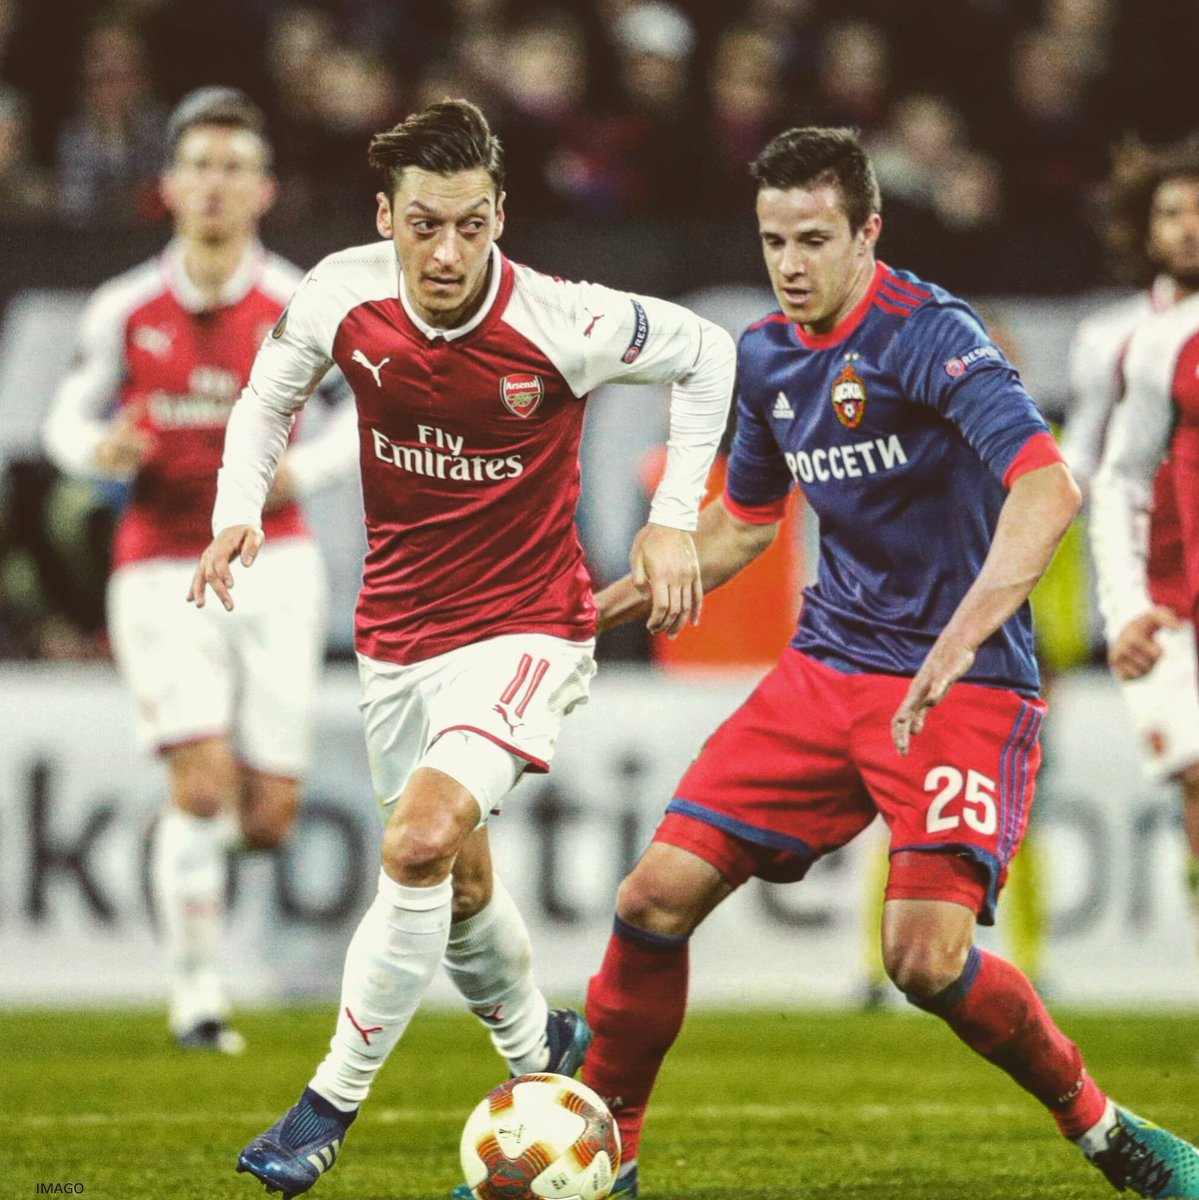 Last 4 of #UEL ✔ A performance we can't be satisfied with, but we're still in the race for the title 👍🏼 #YaGunnersYa @Arsenal